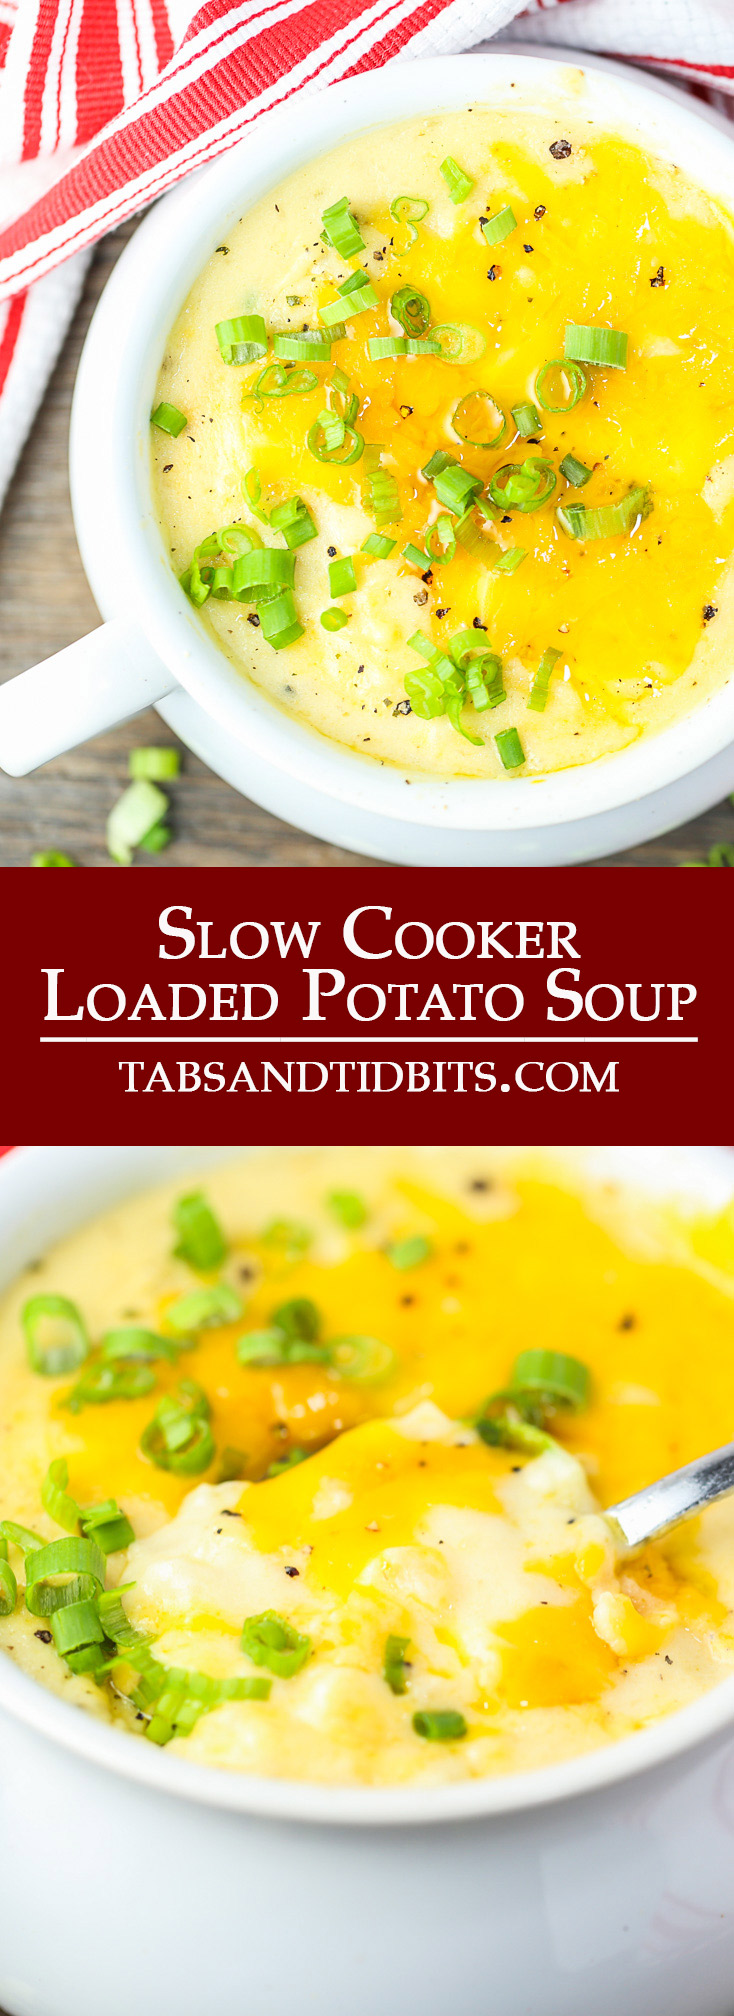 A slow cooker version of the creamy & cheesy loaded potato soup.